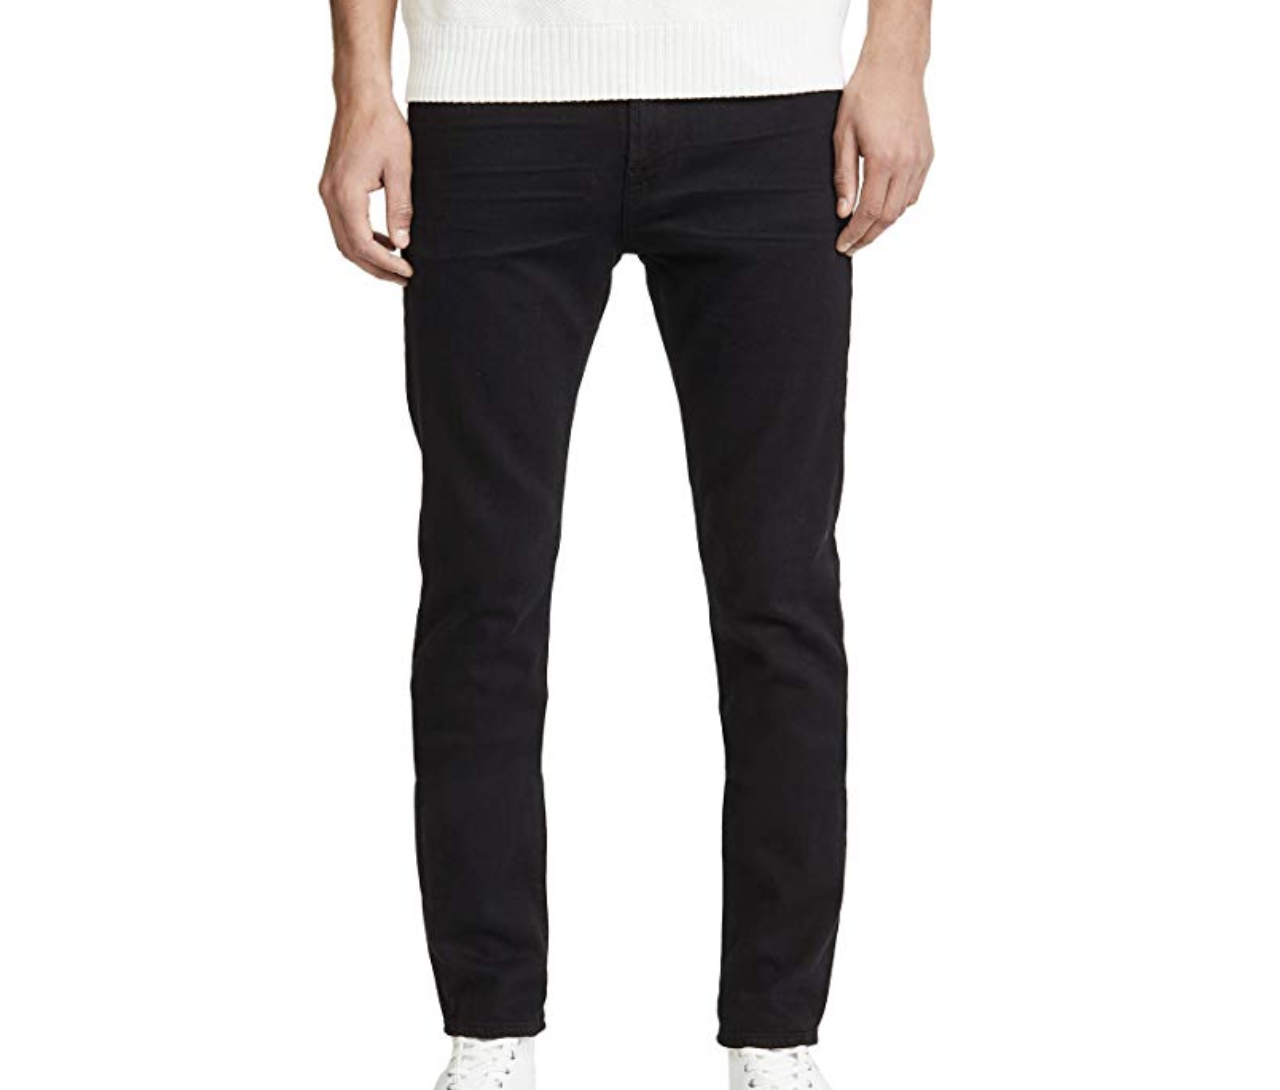 7 For All Mankind Men's Paxtyn Jeans in Annex Black Wash